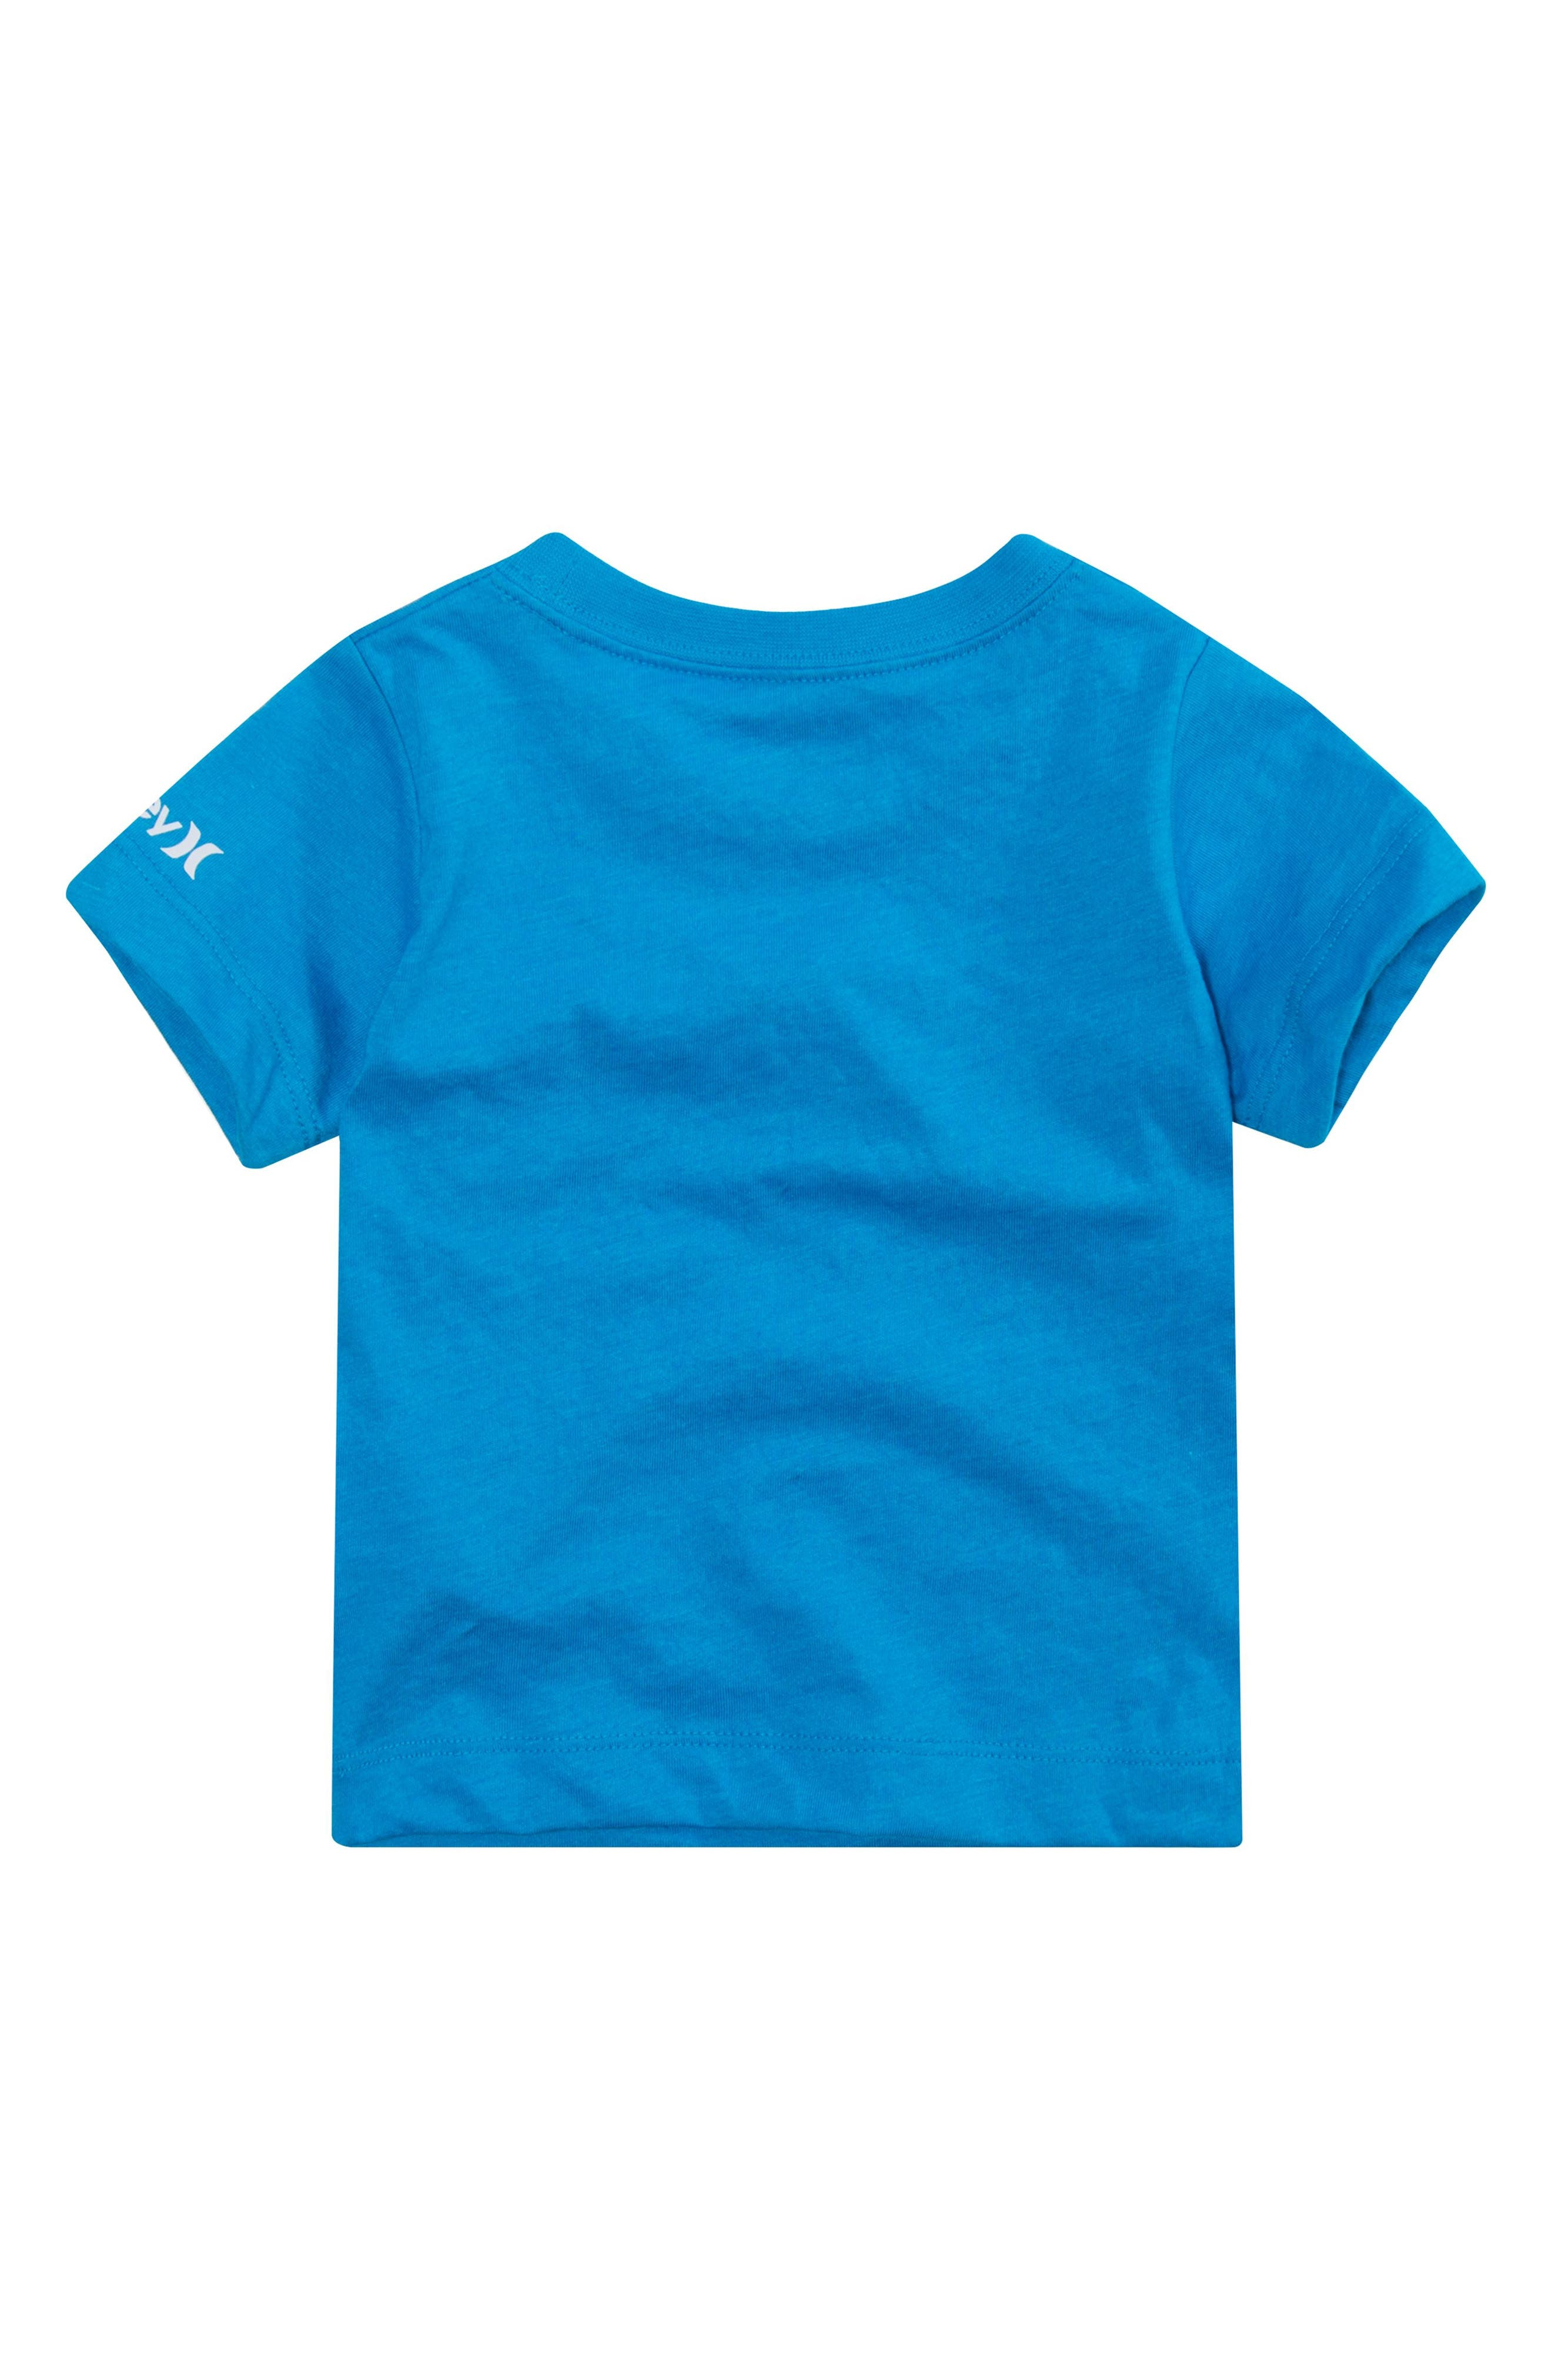 Surf & Enjoy Graphic T-Shirt,                             Alternate thumbnail 2, color,                             400